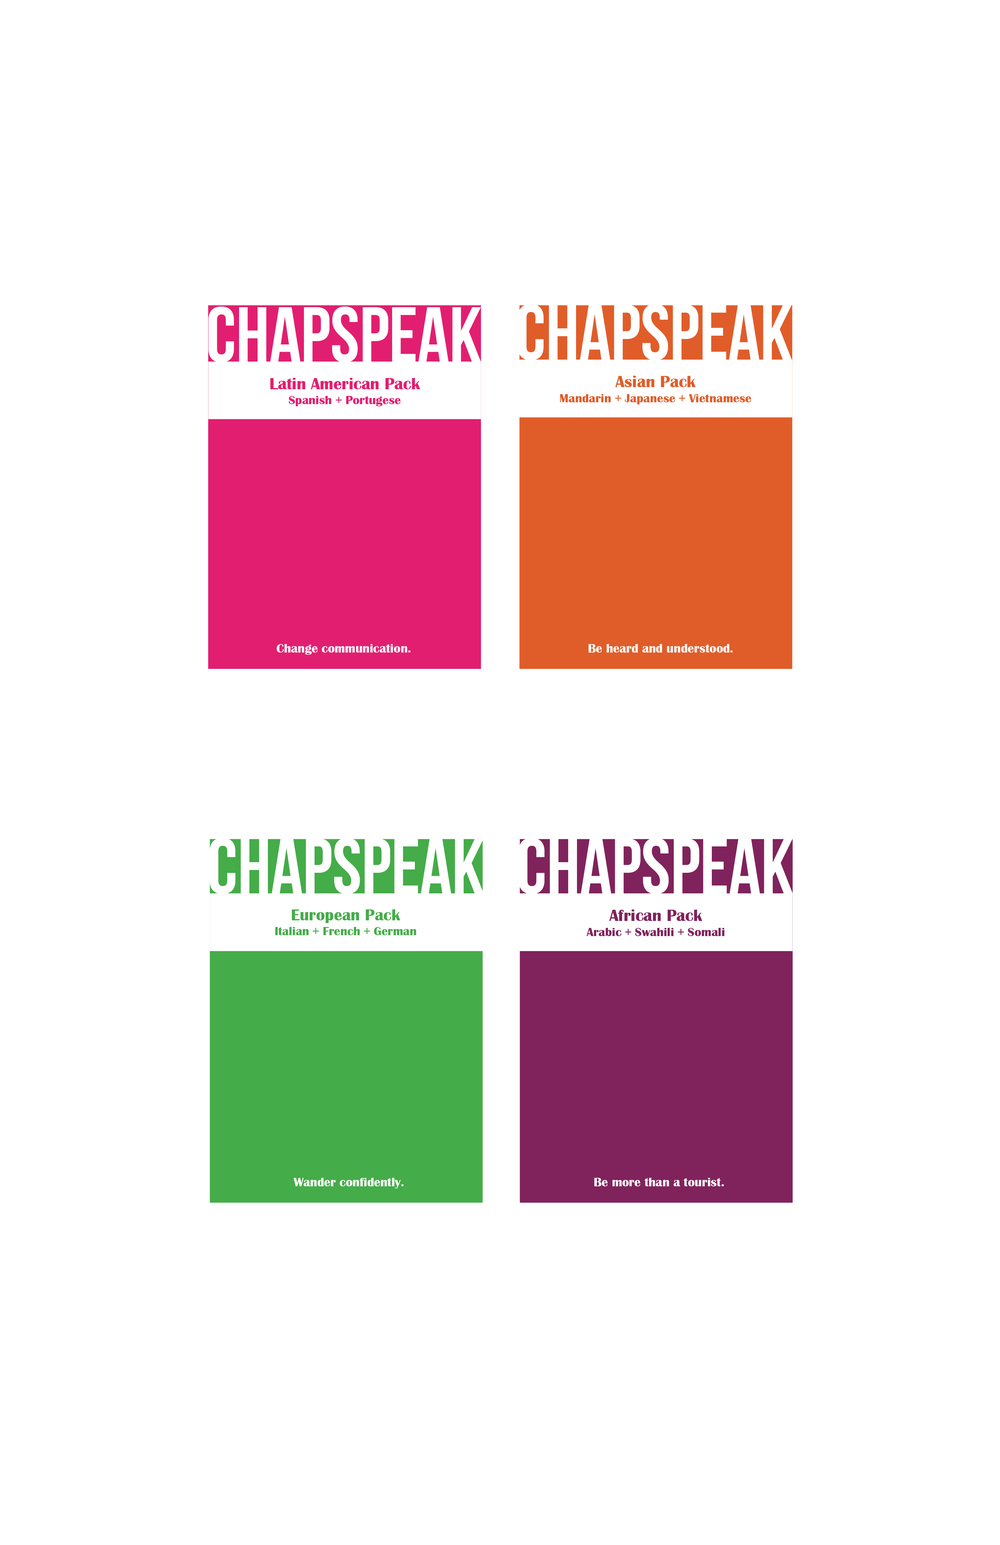 ChapSpeak_packaging-06.jpg